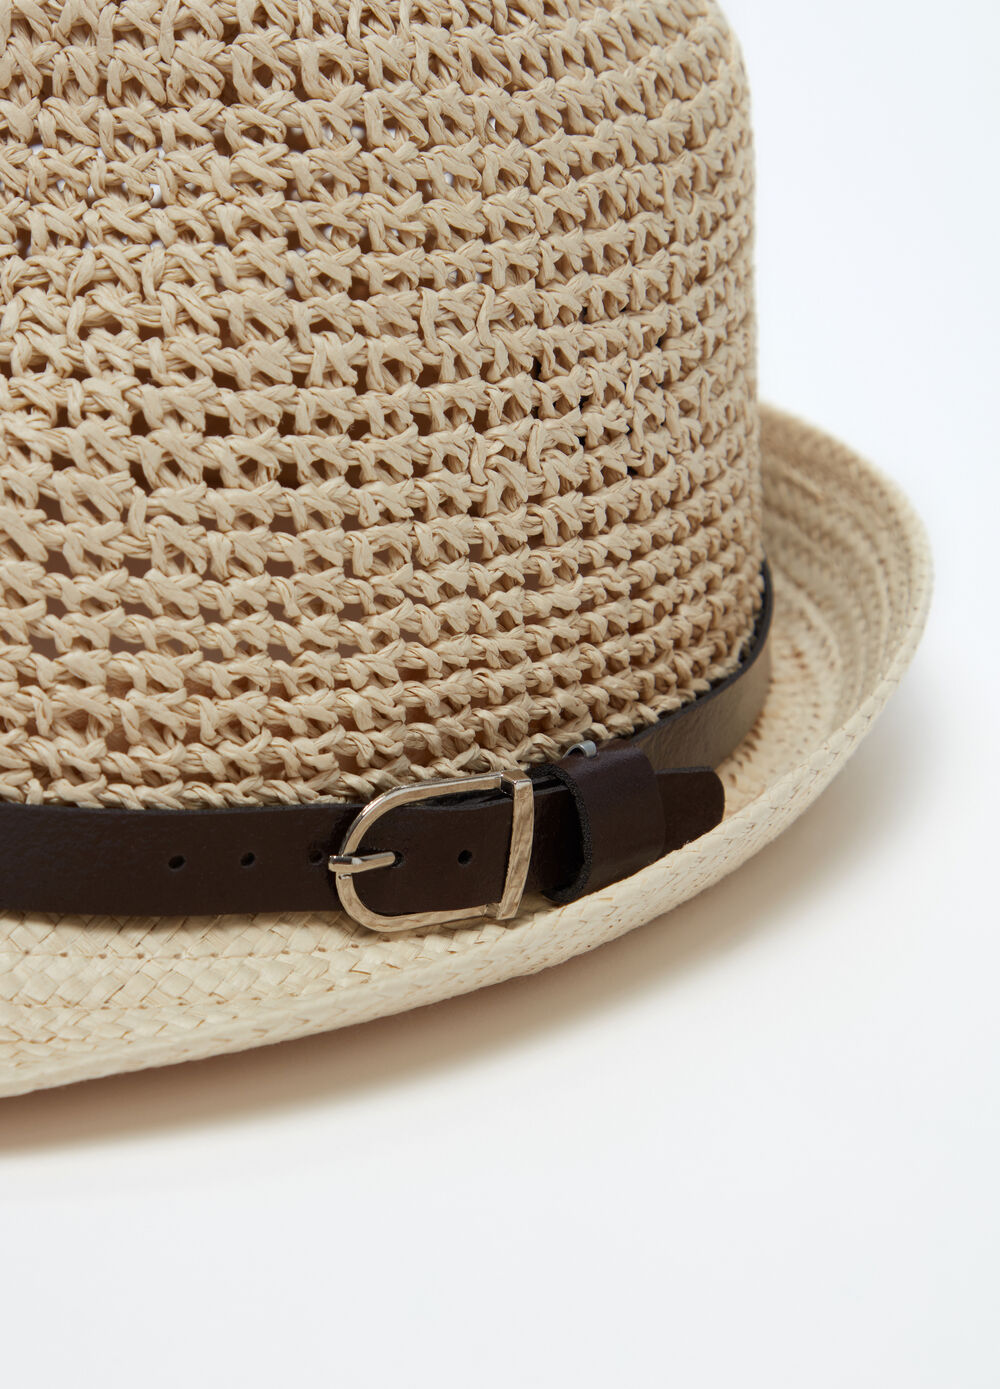 Woven straw hat with strap